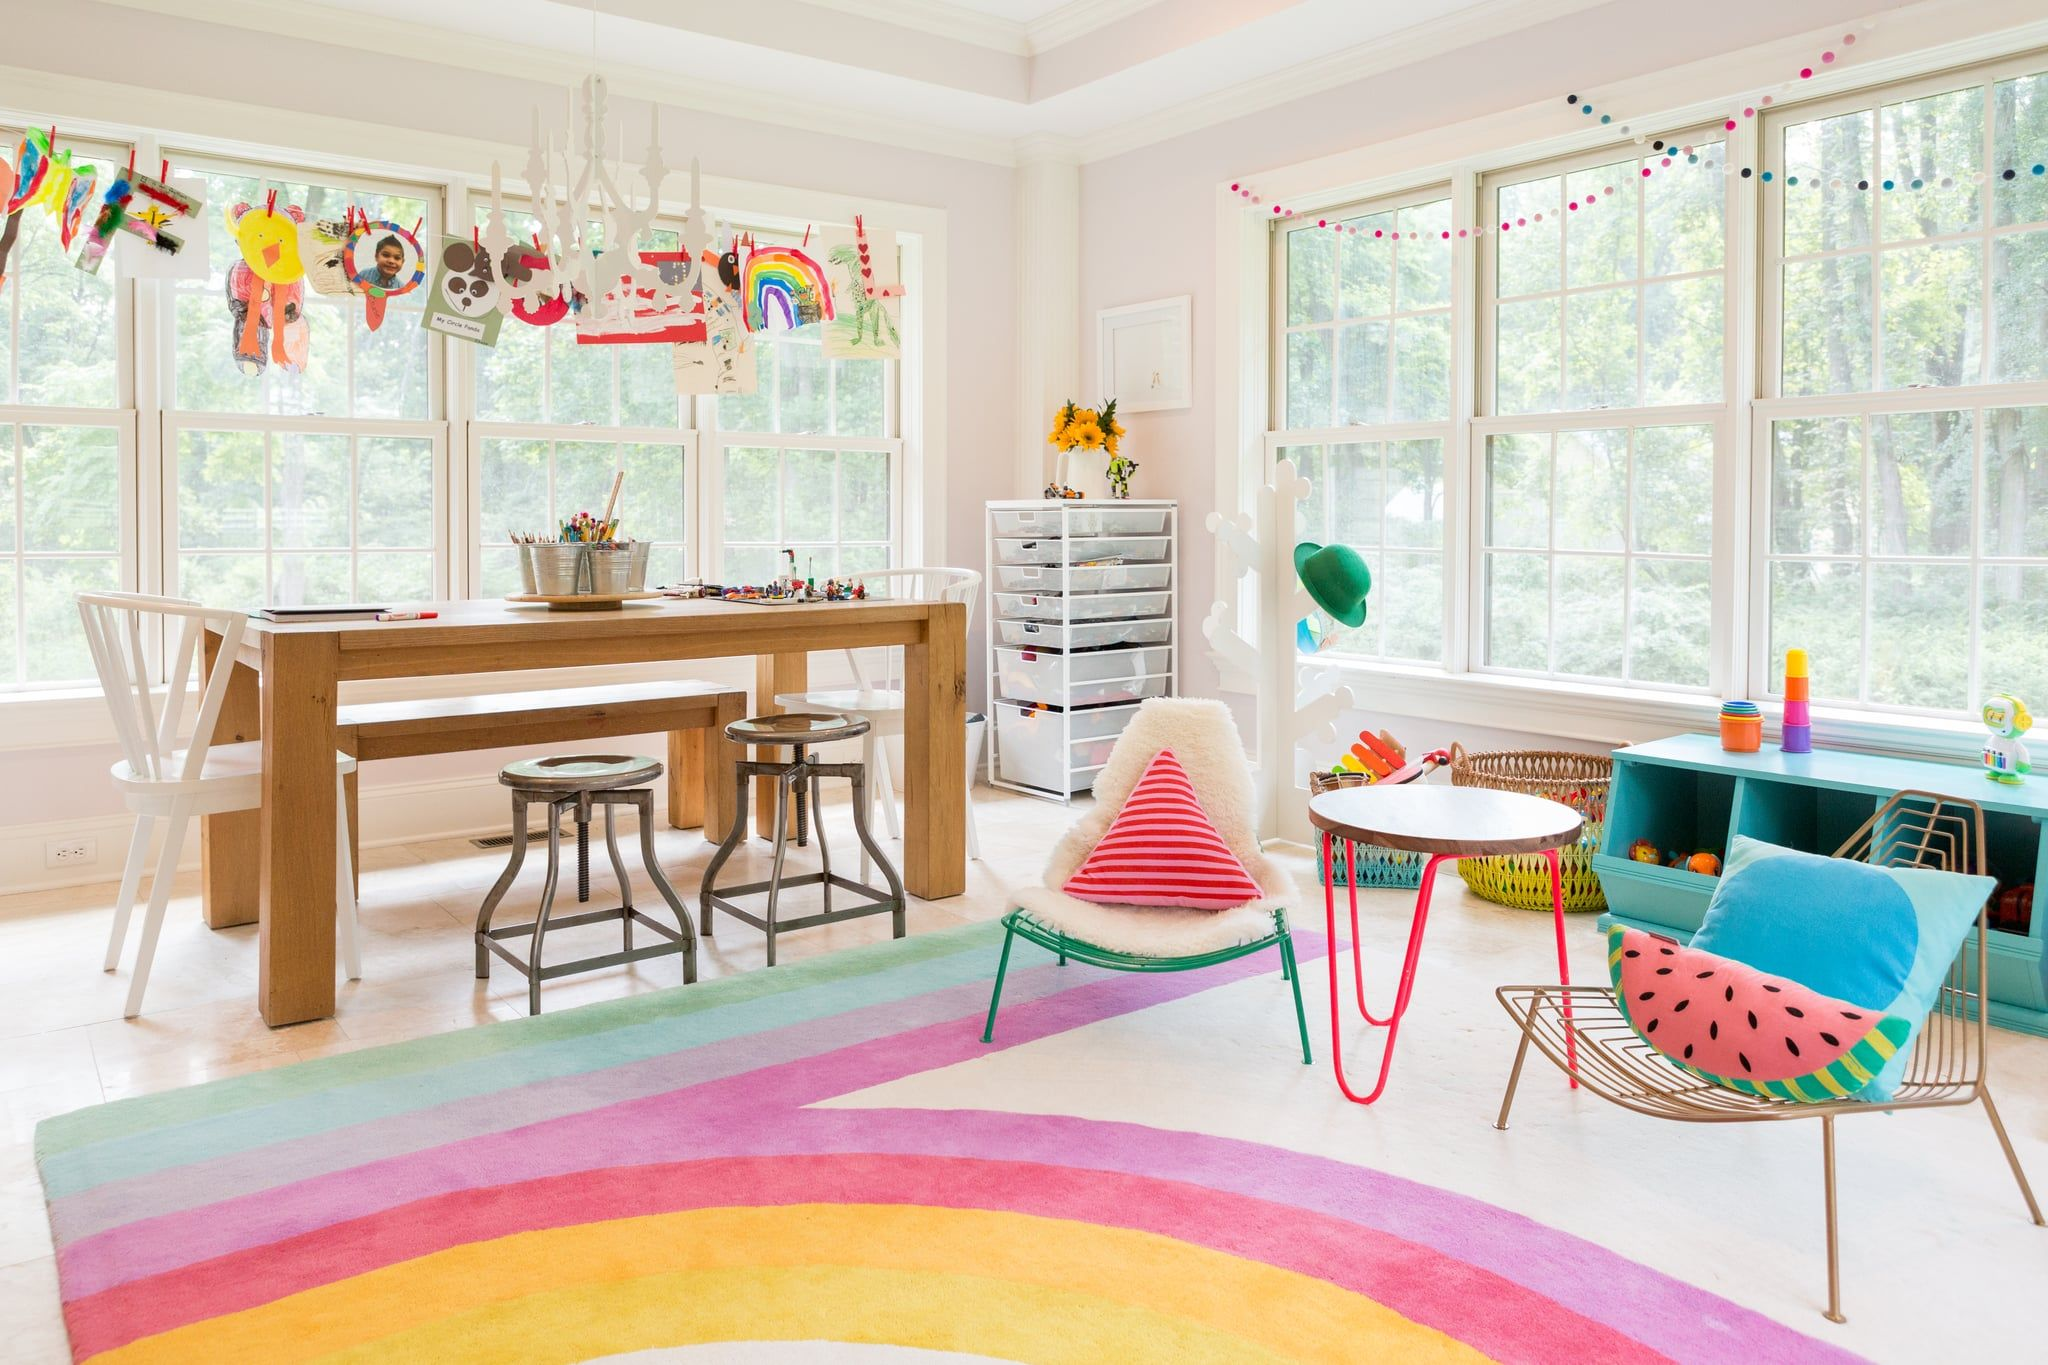 This Colorful Kidsu0027 Playroom Might Be Too Cute To Handle